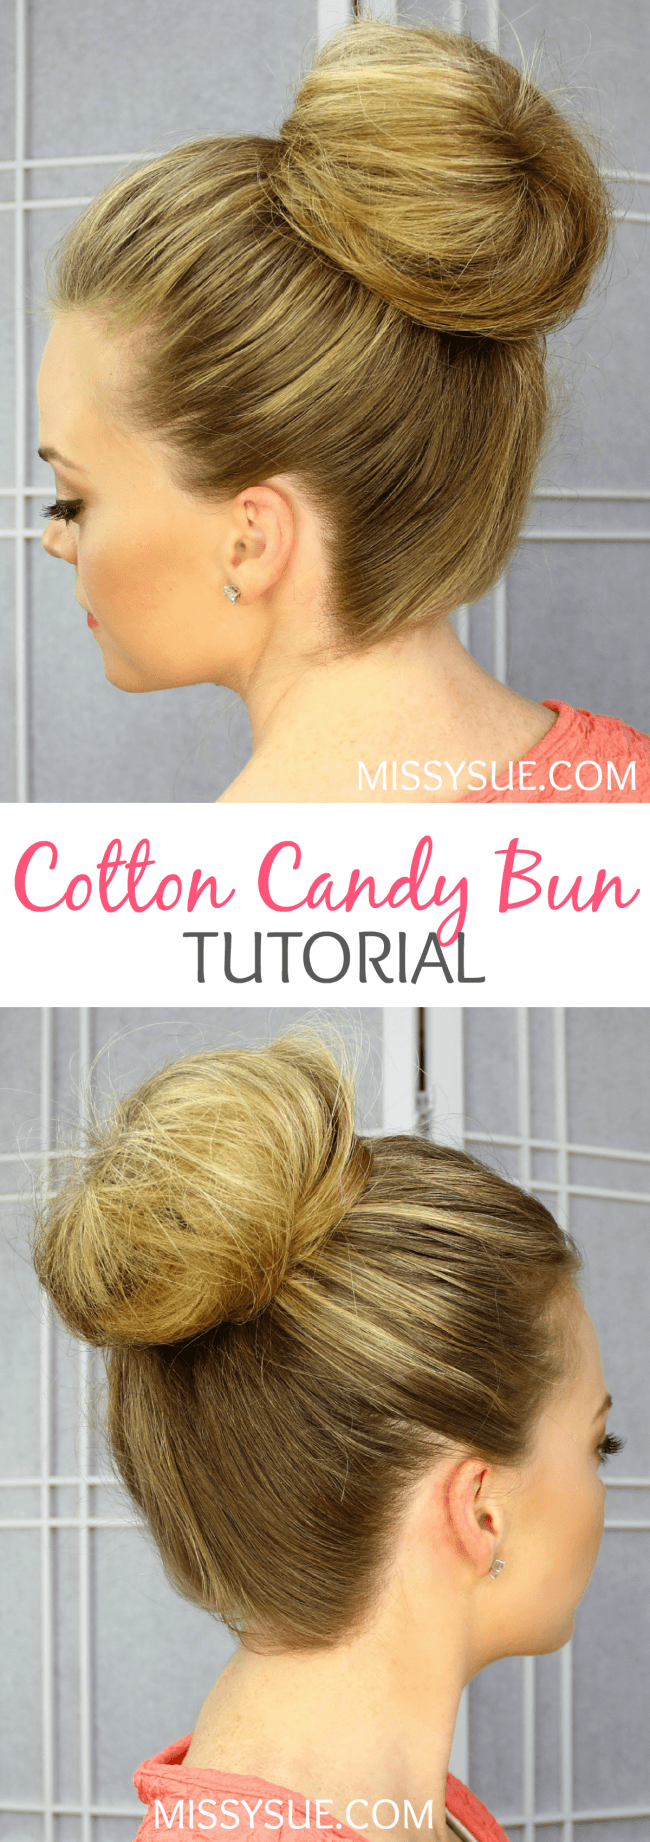 Cotton Candy Bun Tutorial | MIssySue.com